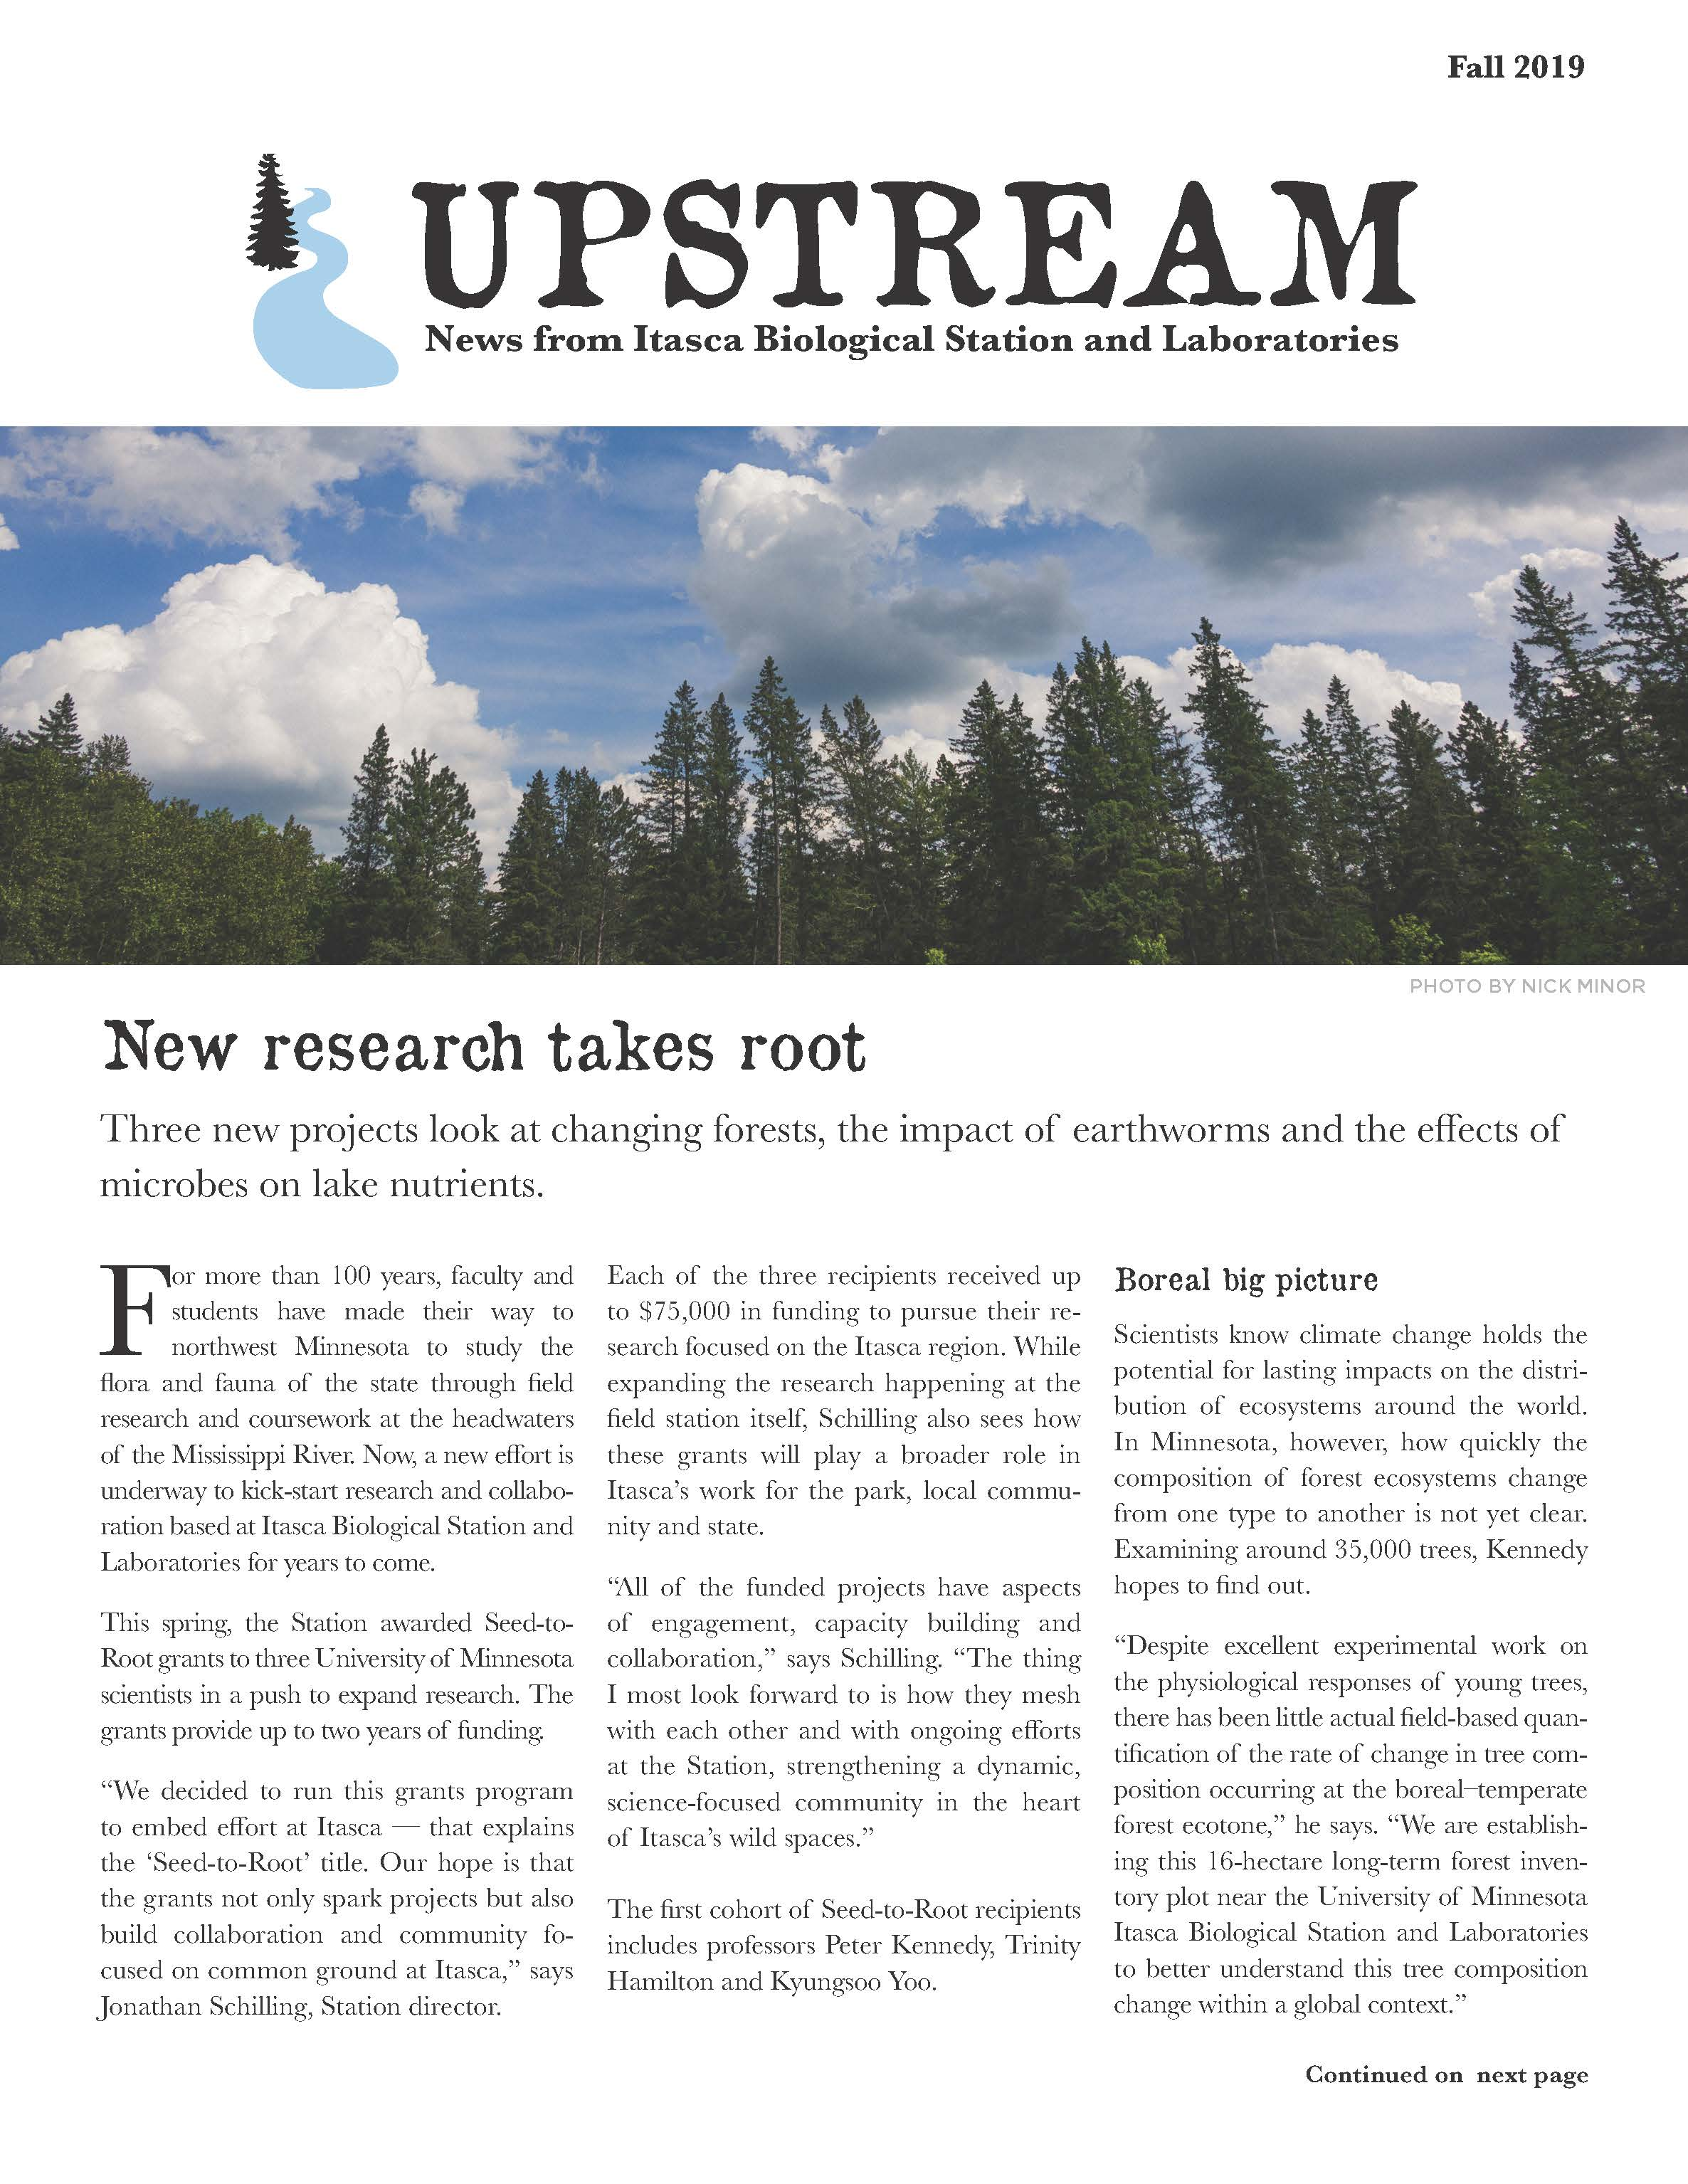 Upstream Fall 2019